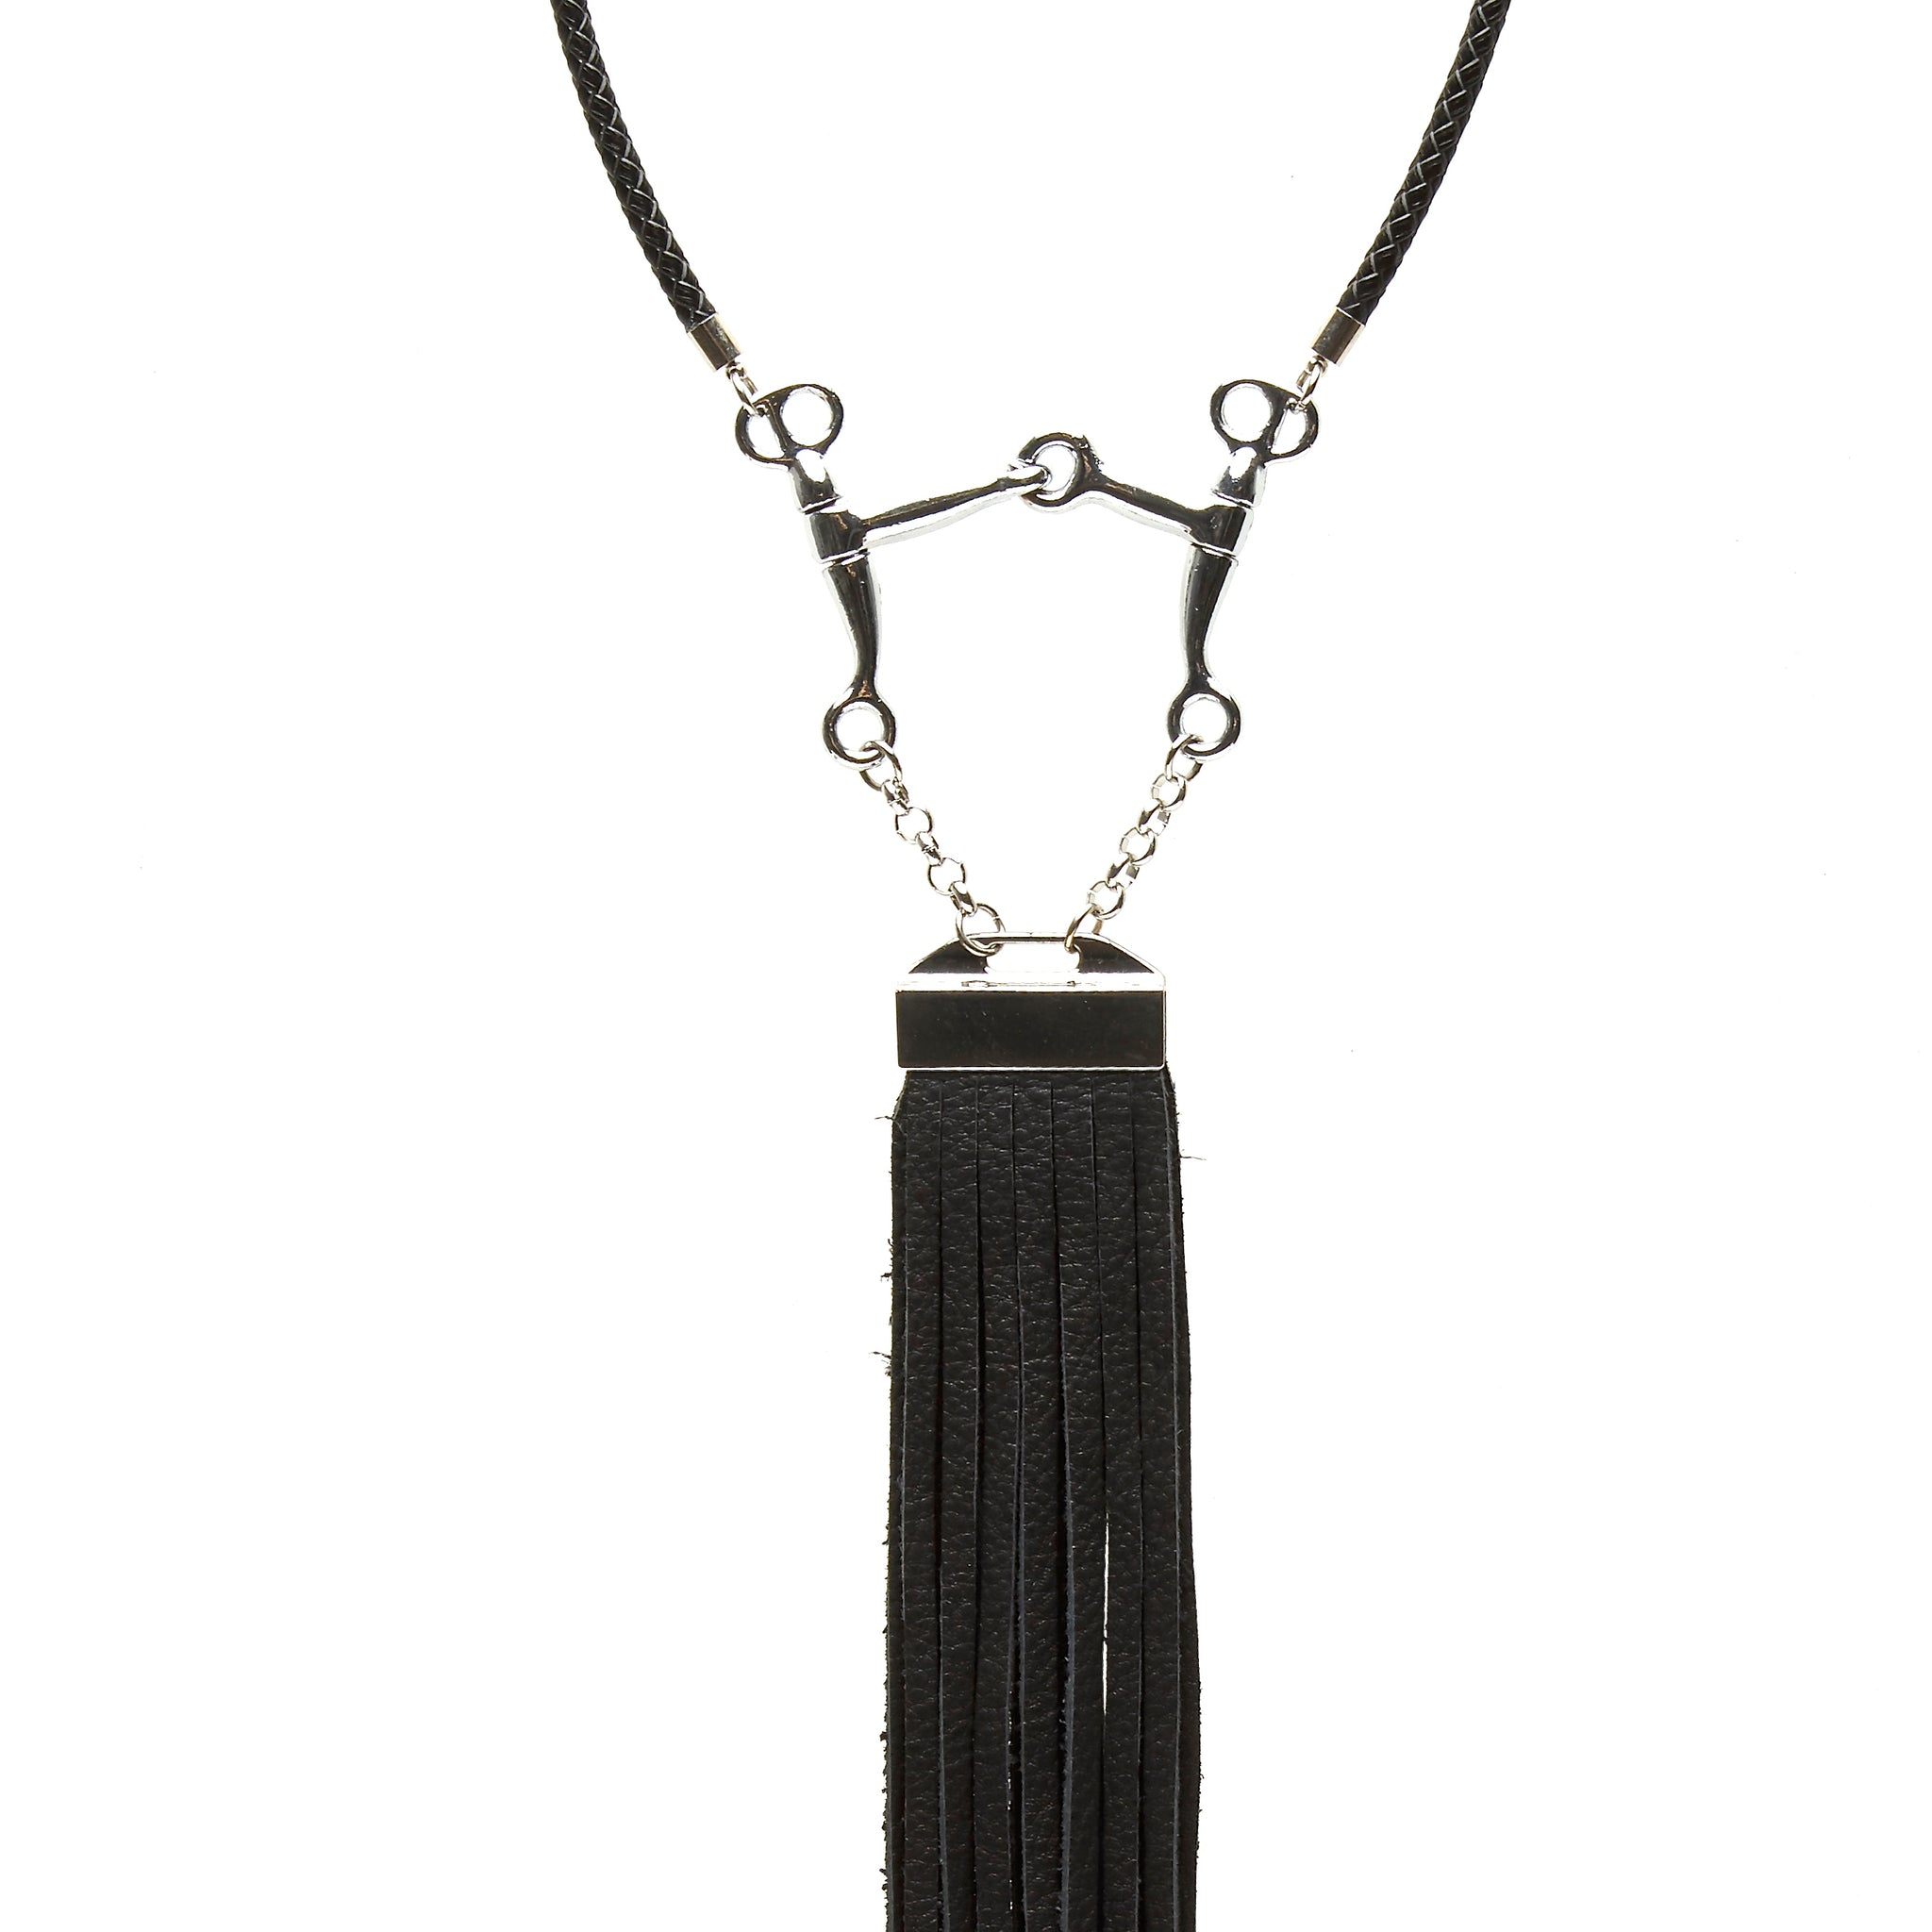 BRAIDED LEATHER CHOKER NECKLACE WITH PELHAM HORSE BIT PENDANT AND LONG DEERSKIN LEATHER FRINGE